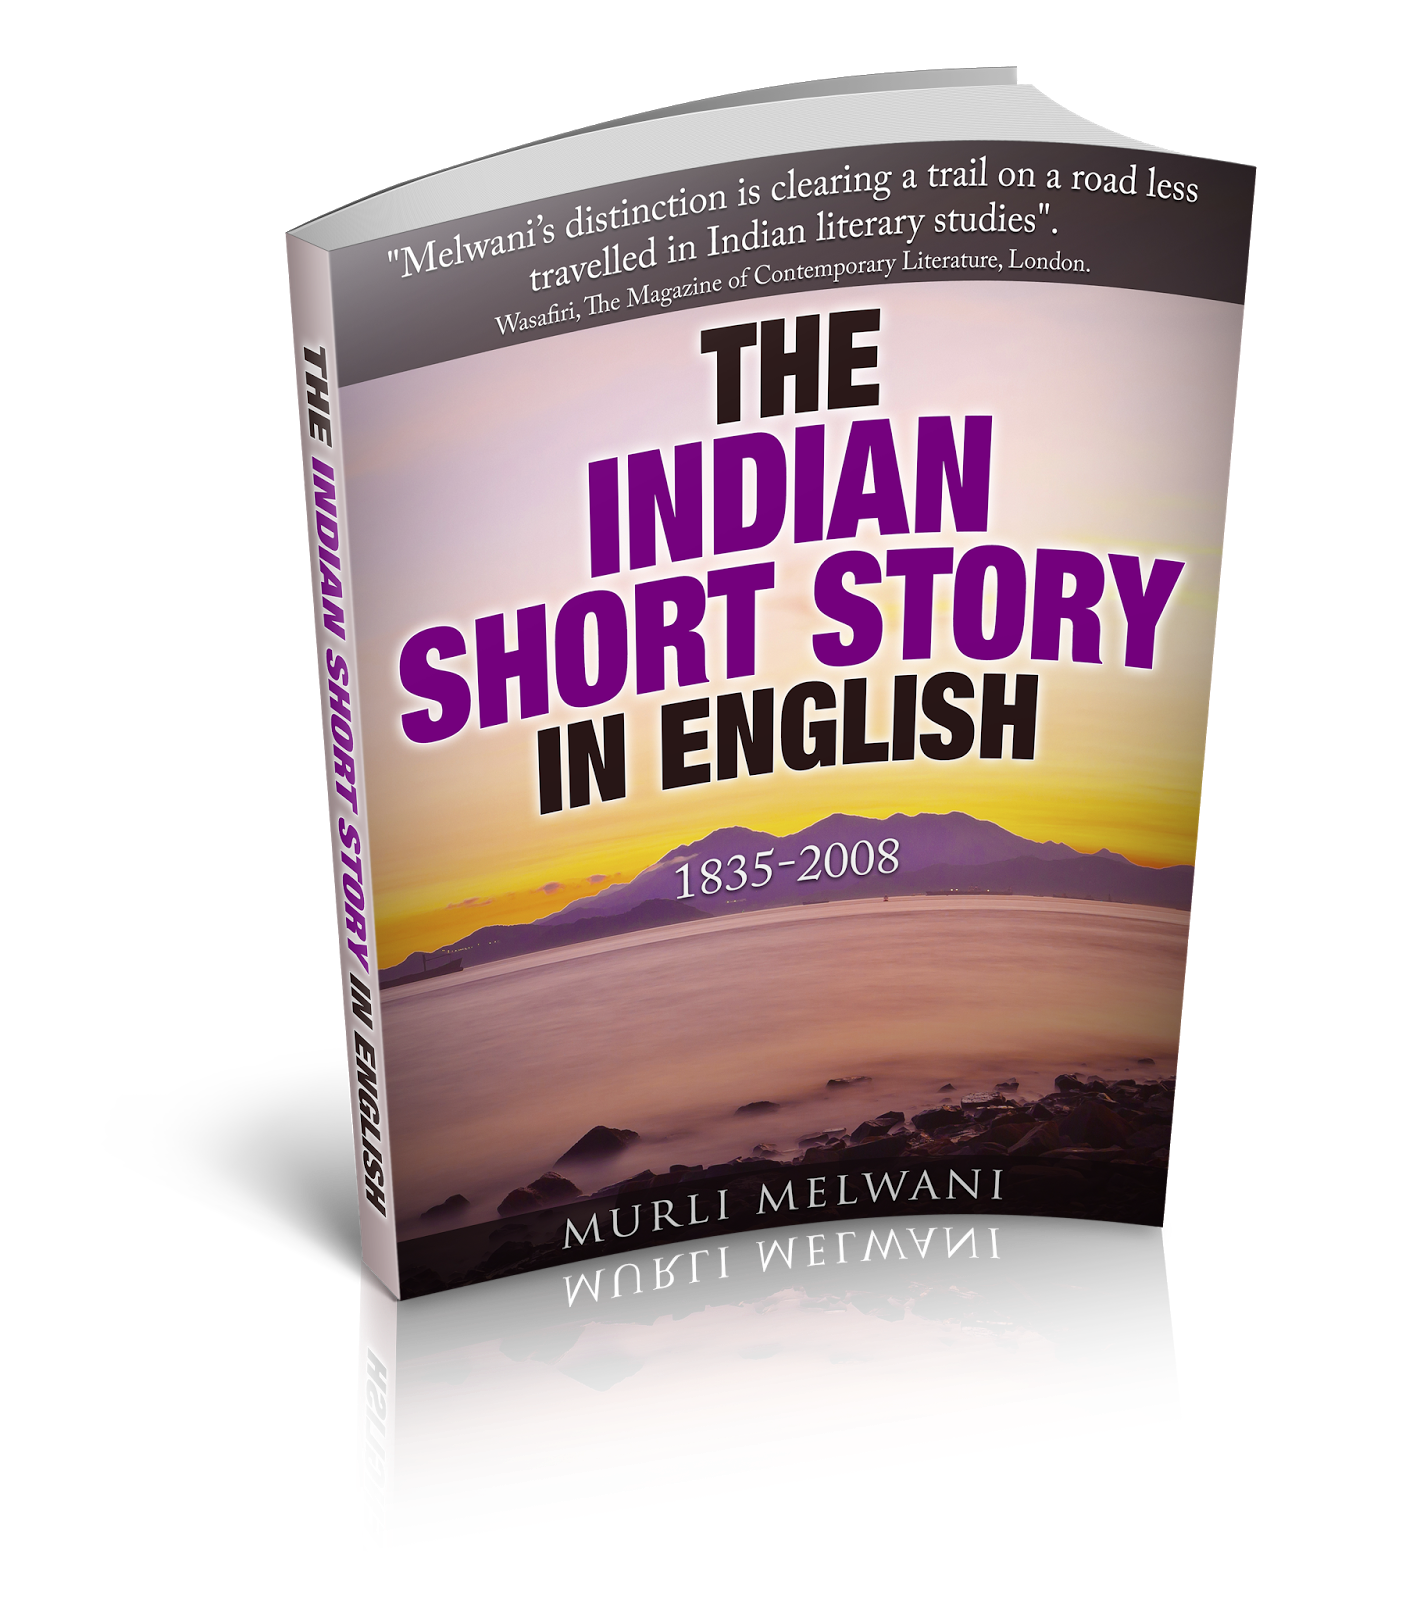 a critical survey of short stories Download and read the modern short story a critical survey the modern short story a critical survey why should wait for some days to get or receive the the modern short story a critical survey book that you.